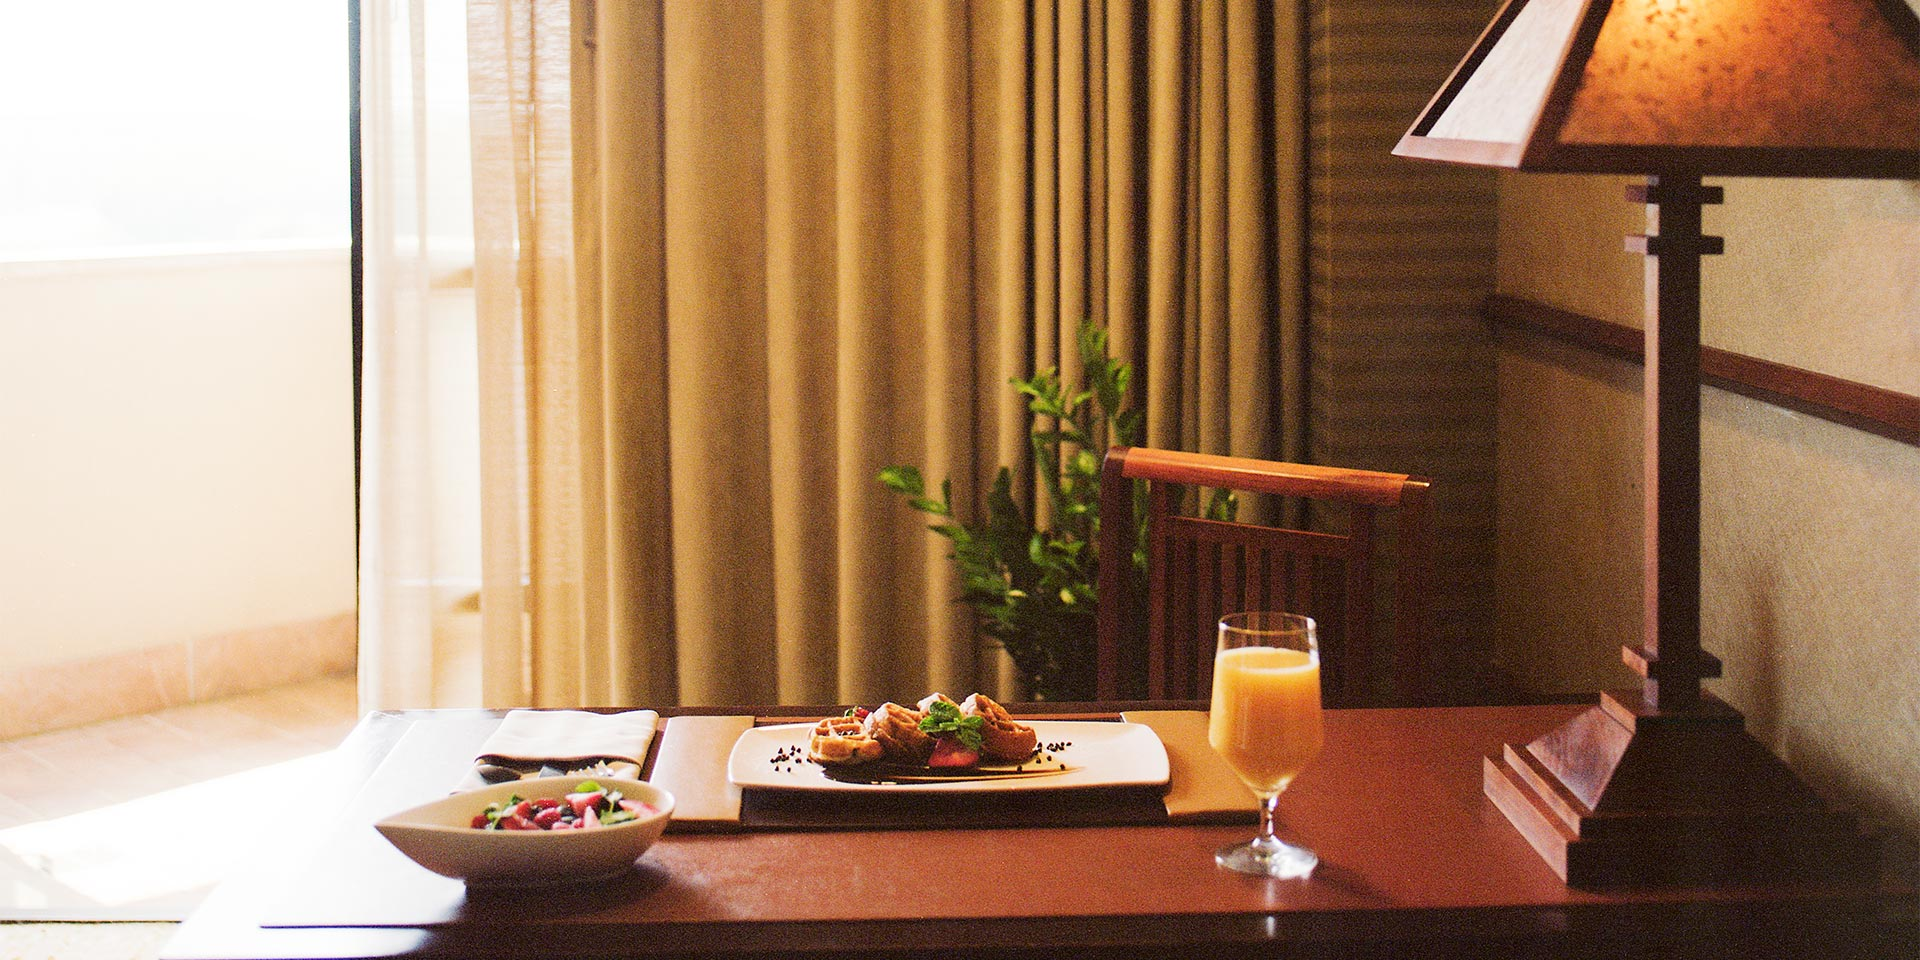 Waffles, orange juice, and a bowl of fruit is placed on a brown wooden table in a well light room.